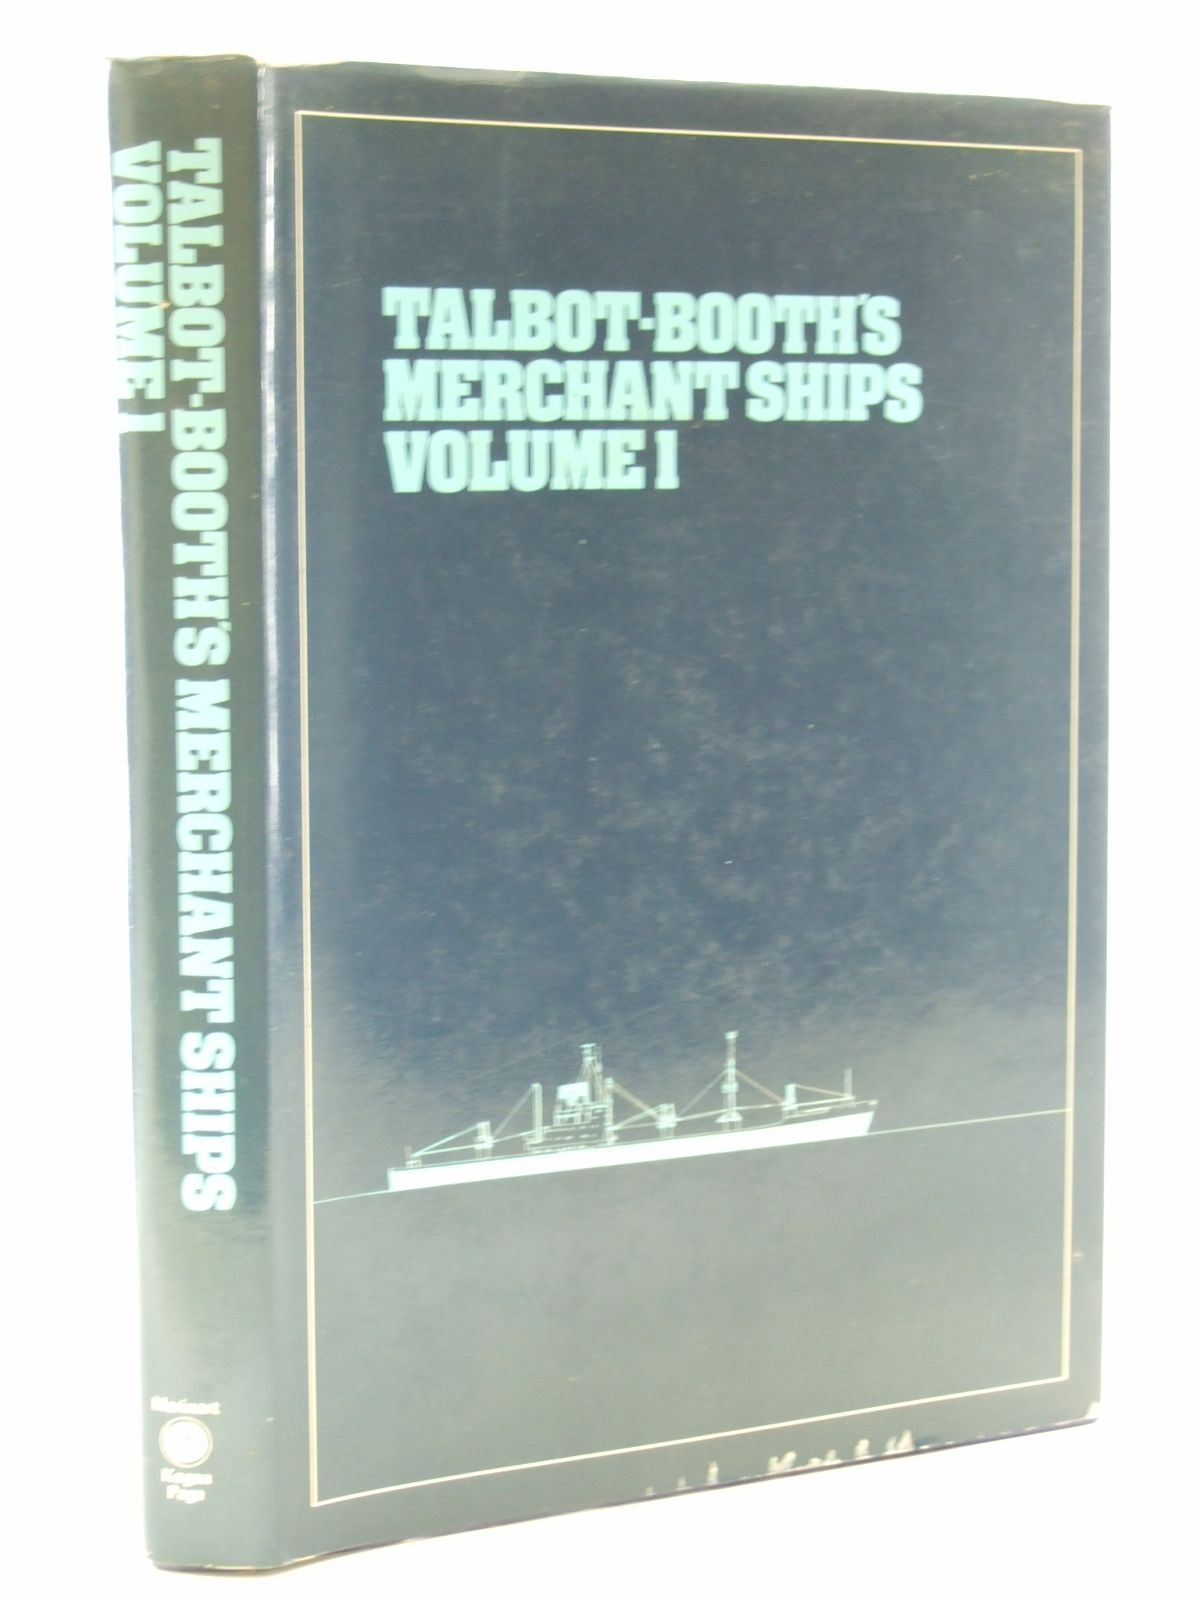 Photo of TALBOT-BOOTH'S MERCHANT SHIPS VOLUME 1 written by Talbot-Booth, E.C. published by Marinart, Kogan Page (STOCK CODE: 1603342)  for sale by Stella & Rose's Books